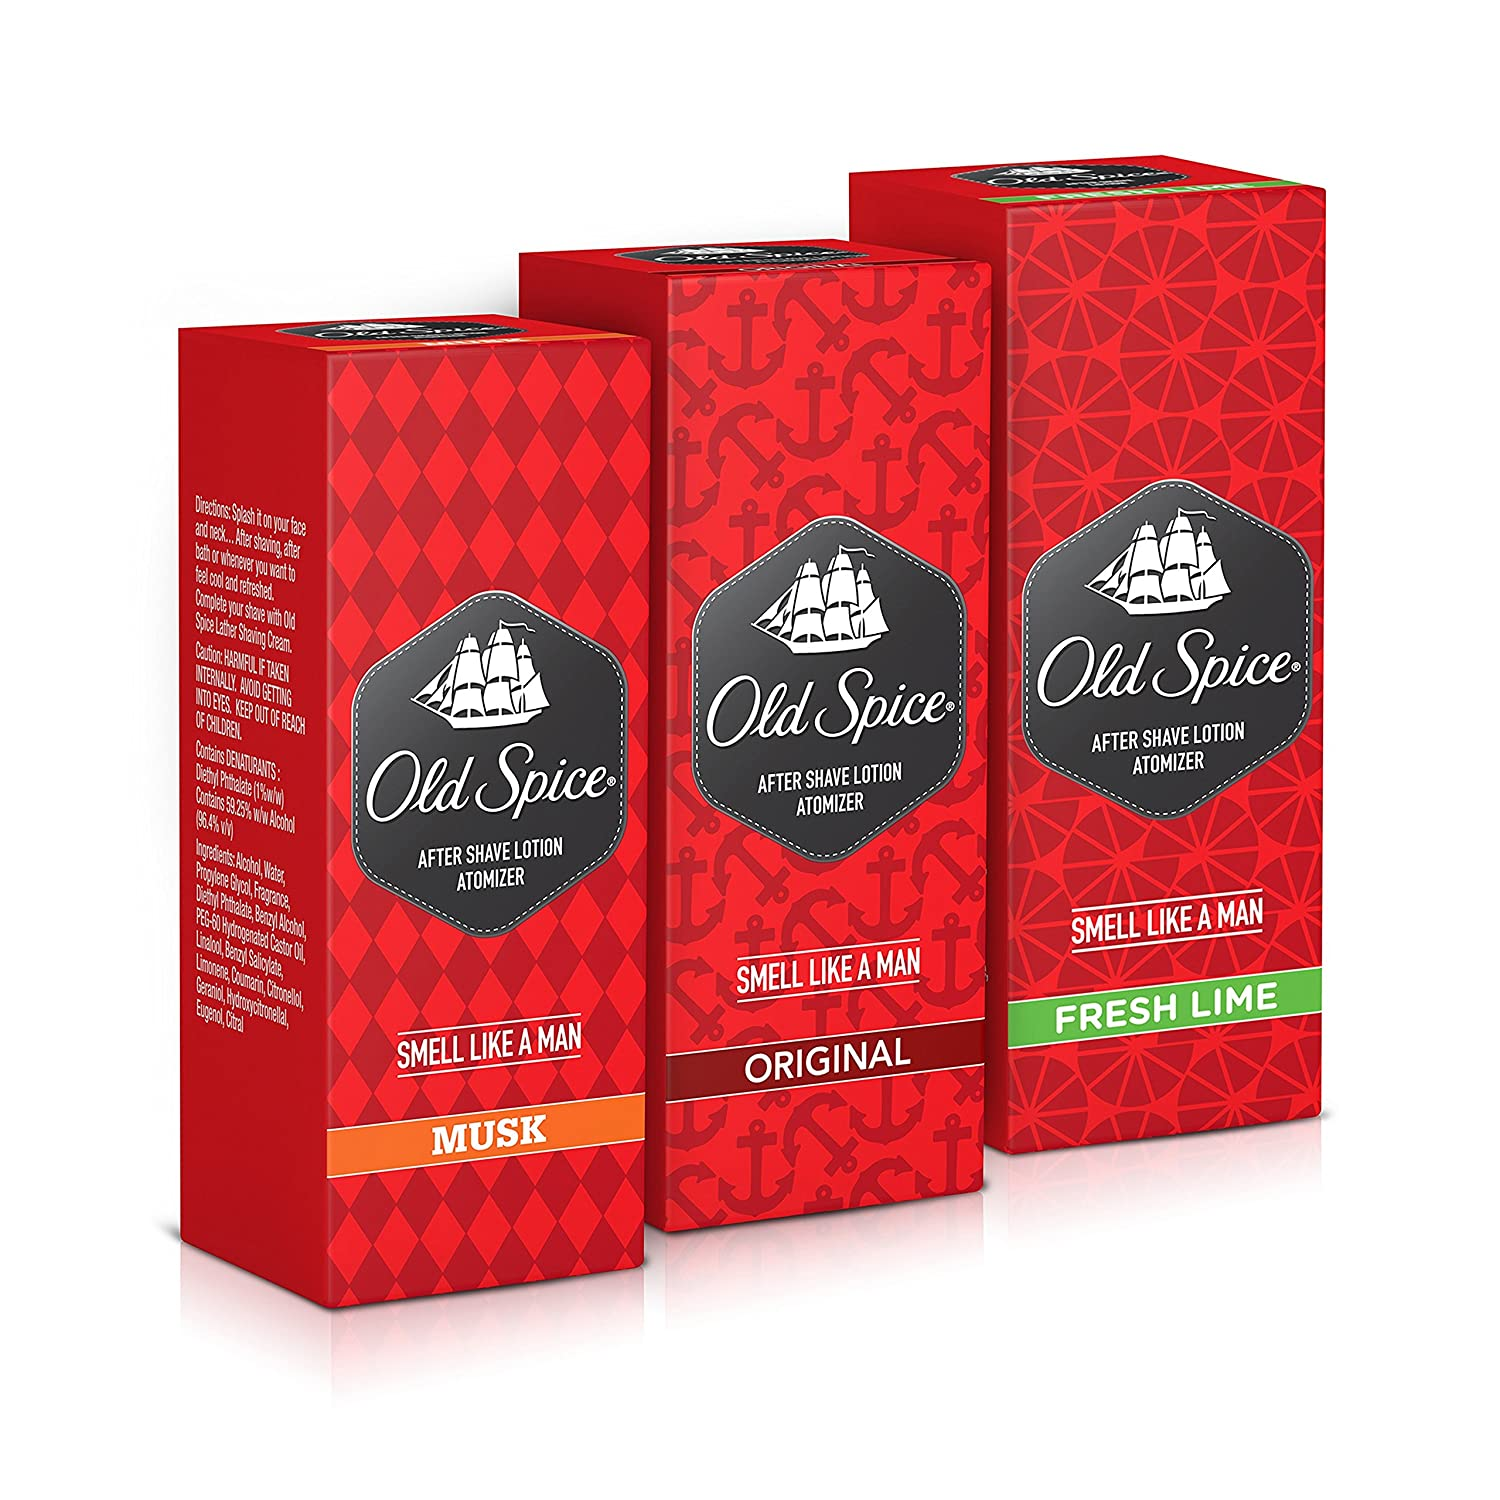 Old Spice After Shave Lotion musk Clients First Splash For Gentelmen pack Of 3 X 150ml